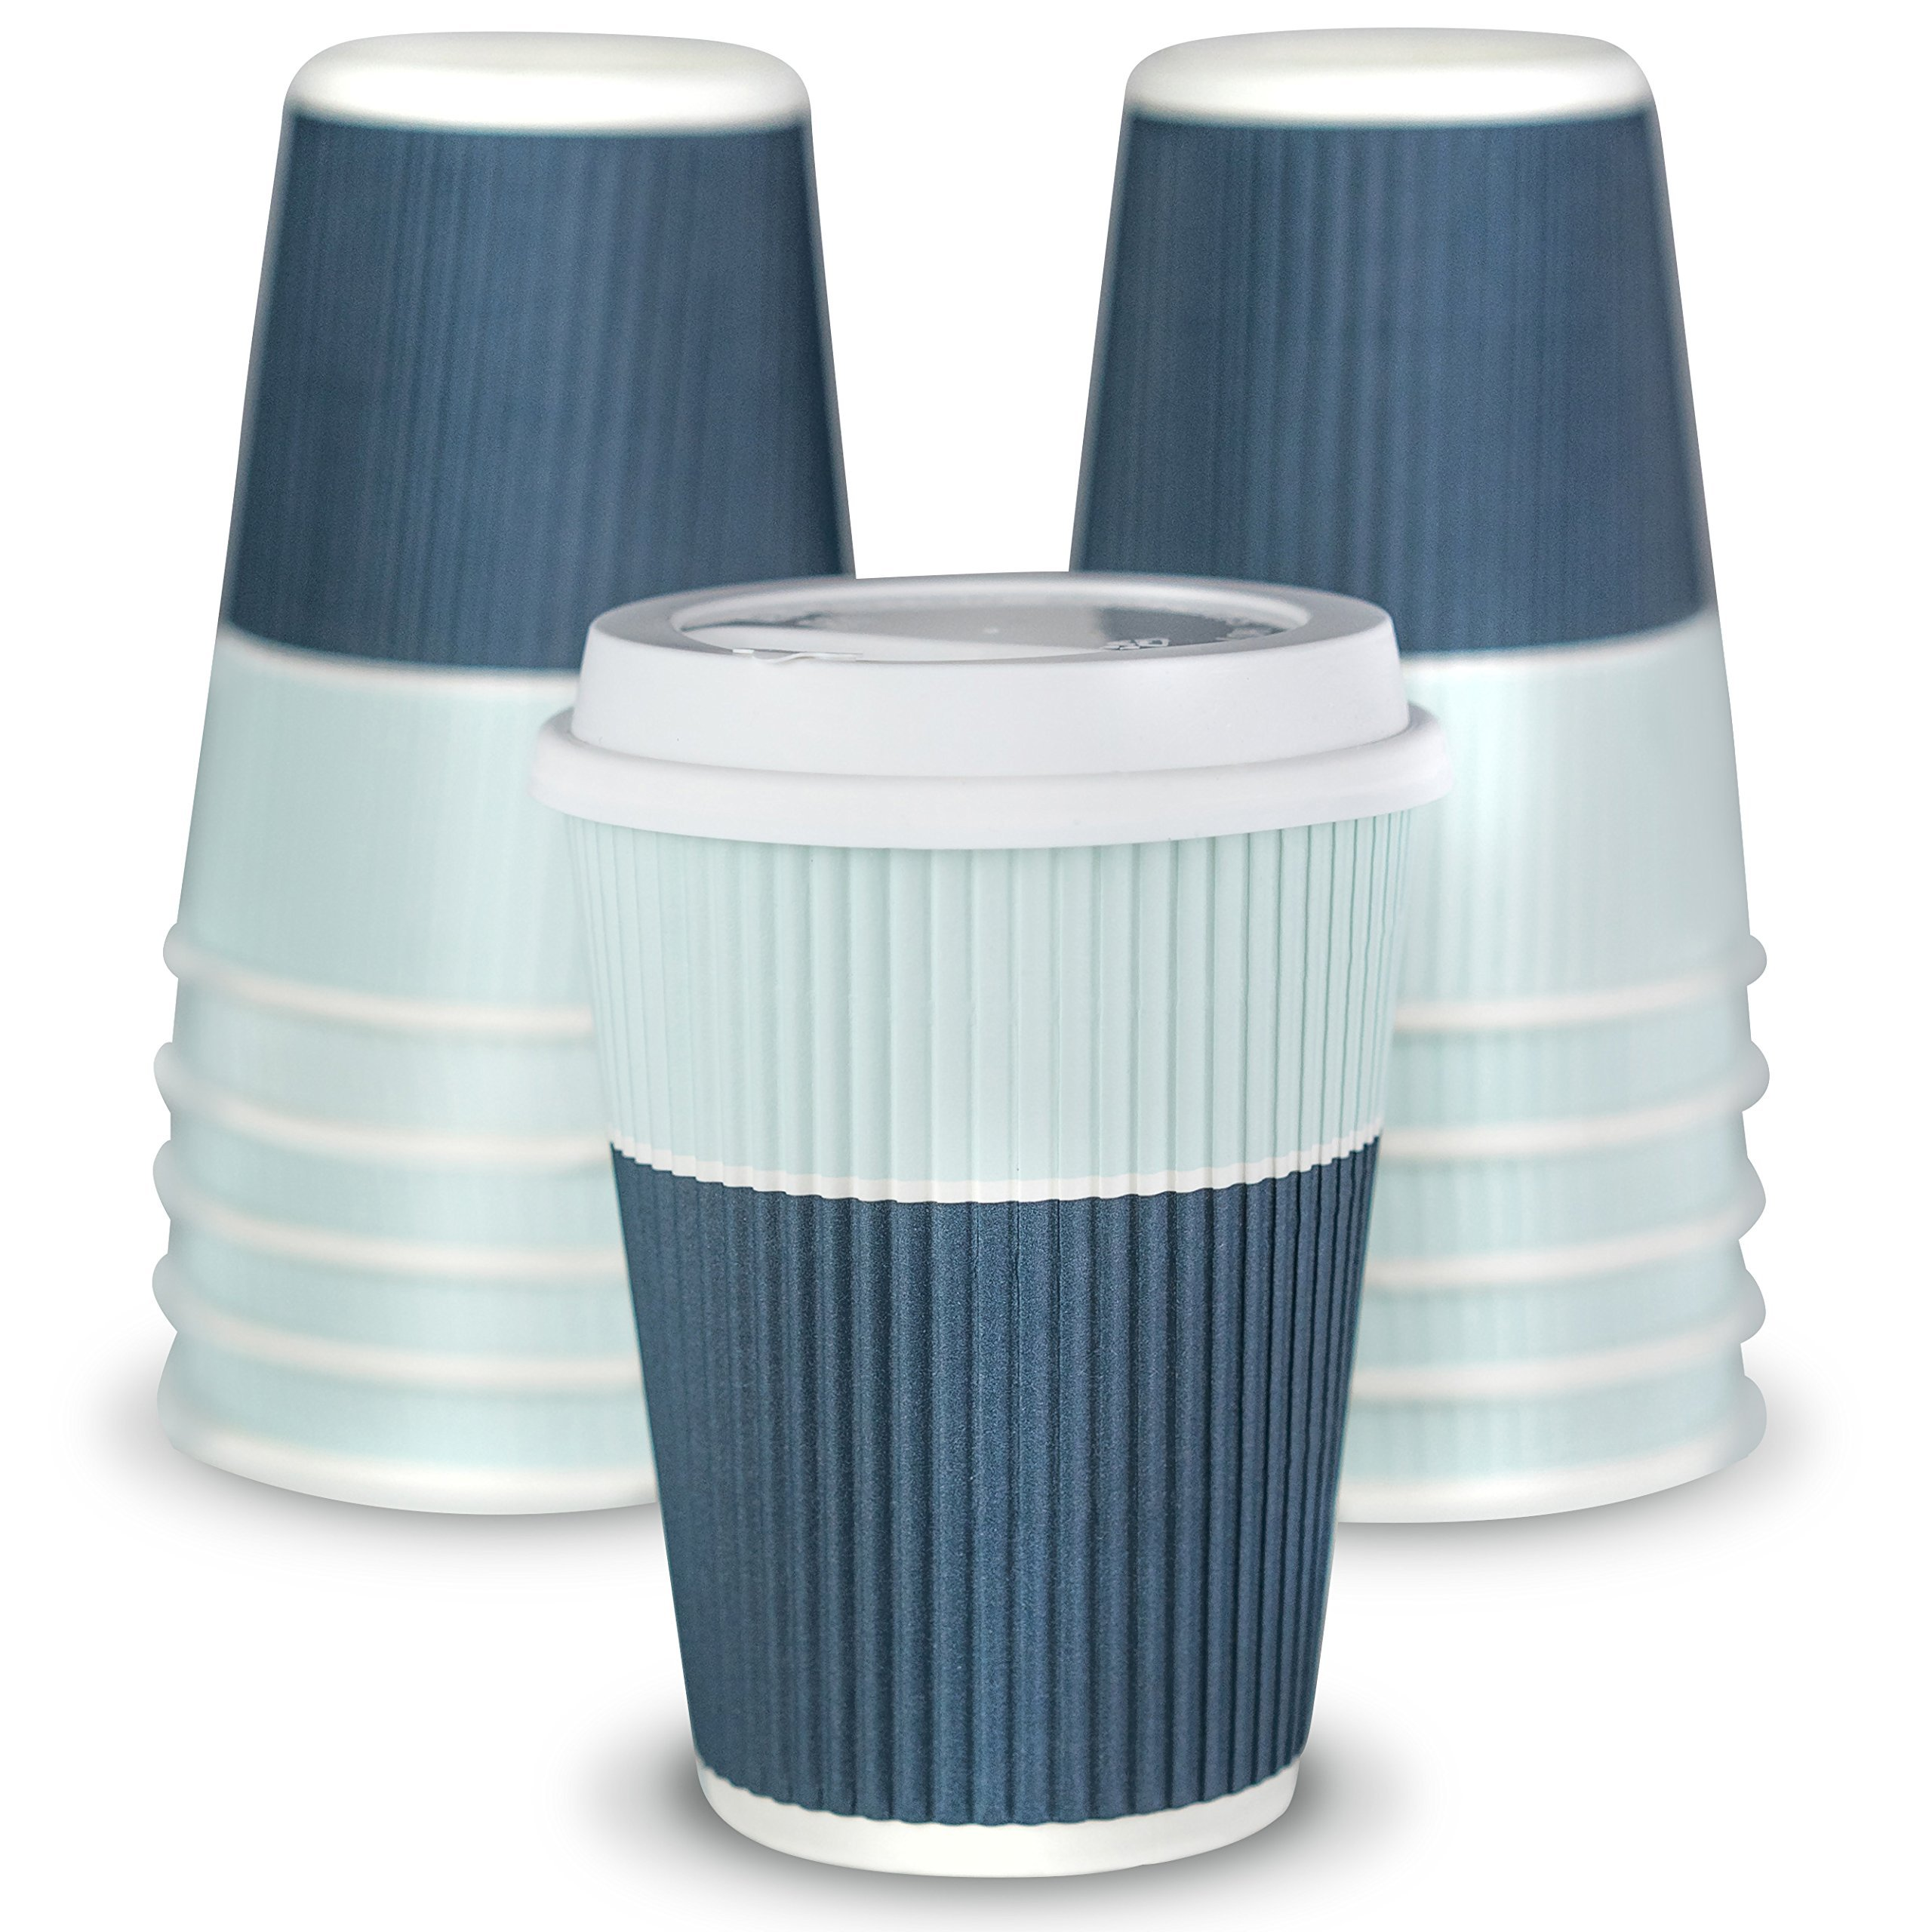 Details about Glowcoast Disposable Coffee Cups With Lids - 12 oz To Go  Coffee Cups (90 Set)